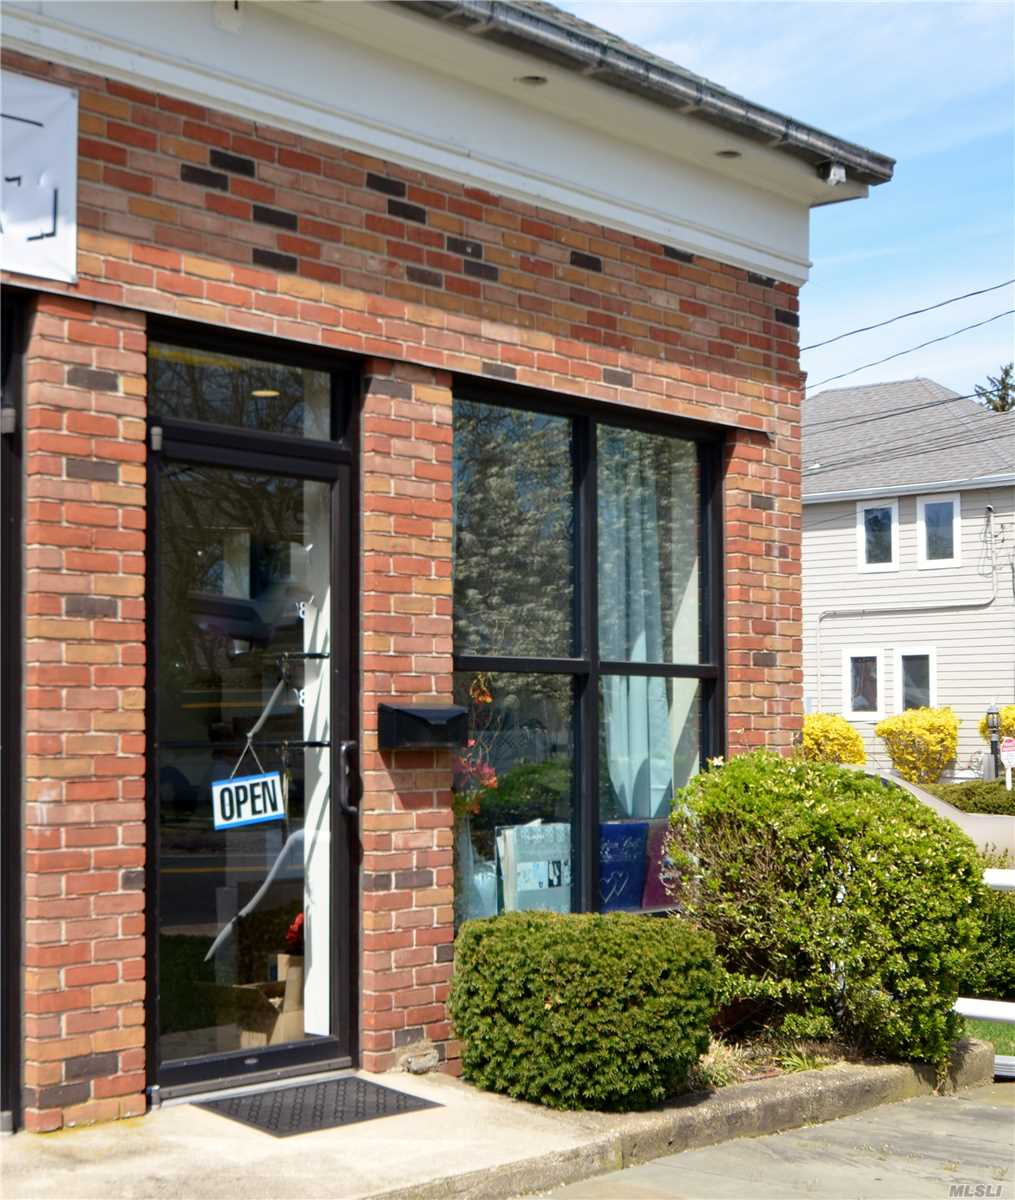 Three Room Professional Office Suite, Ideal for Accountant, Attorney, Insurance, Or Chiropractor, Etc. Great Exposure On Main Road With Ample Parking.